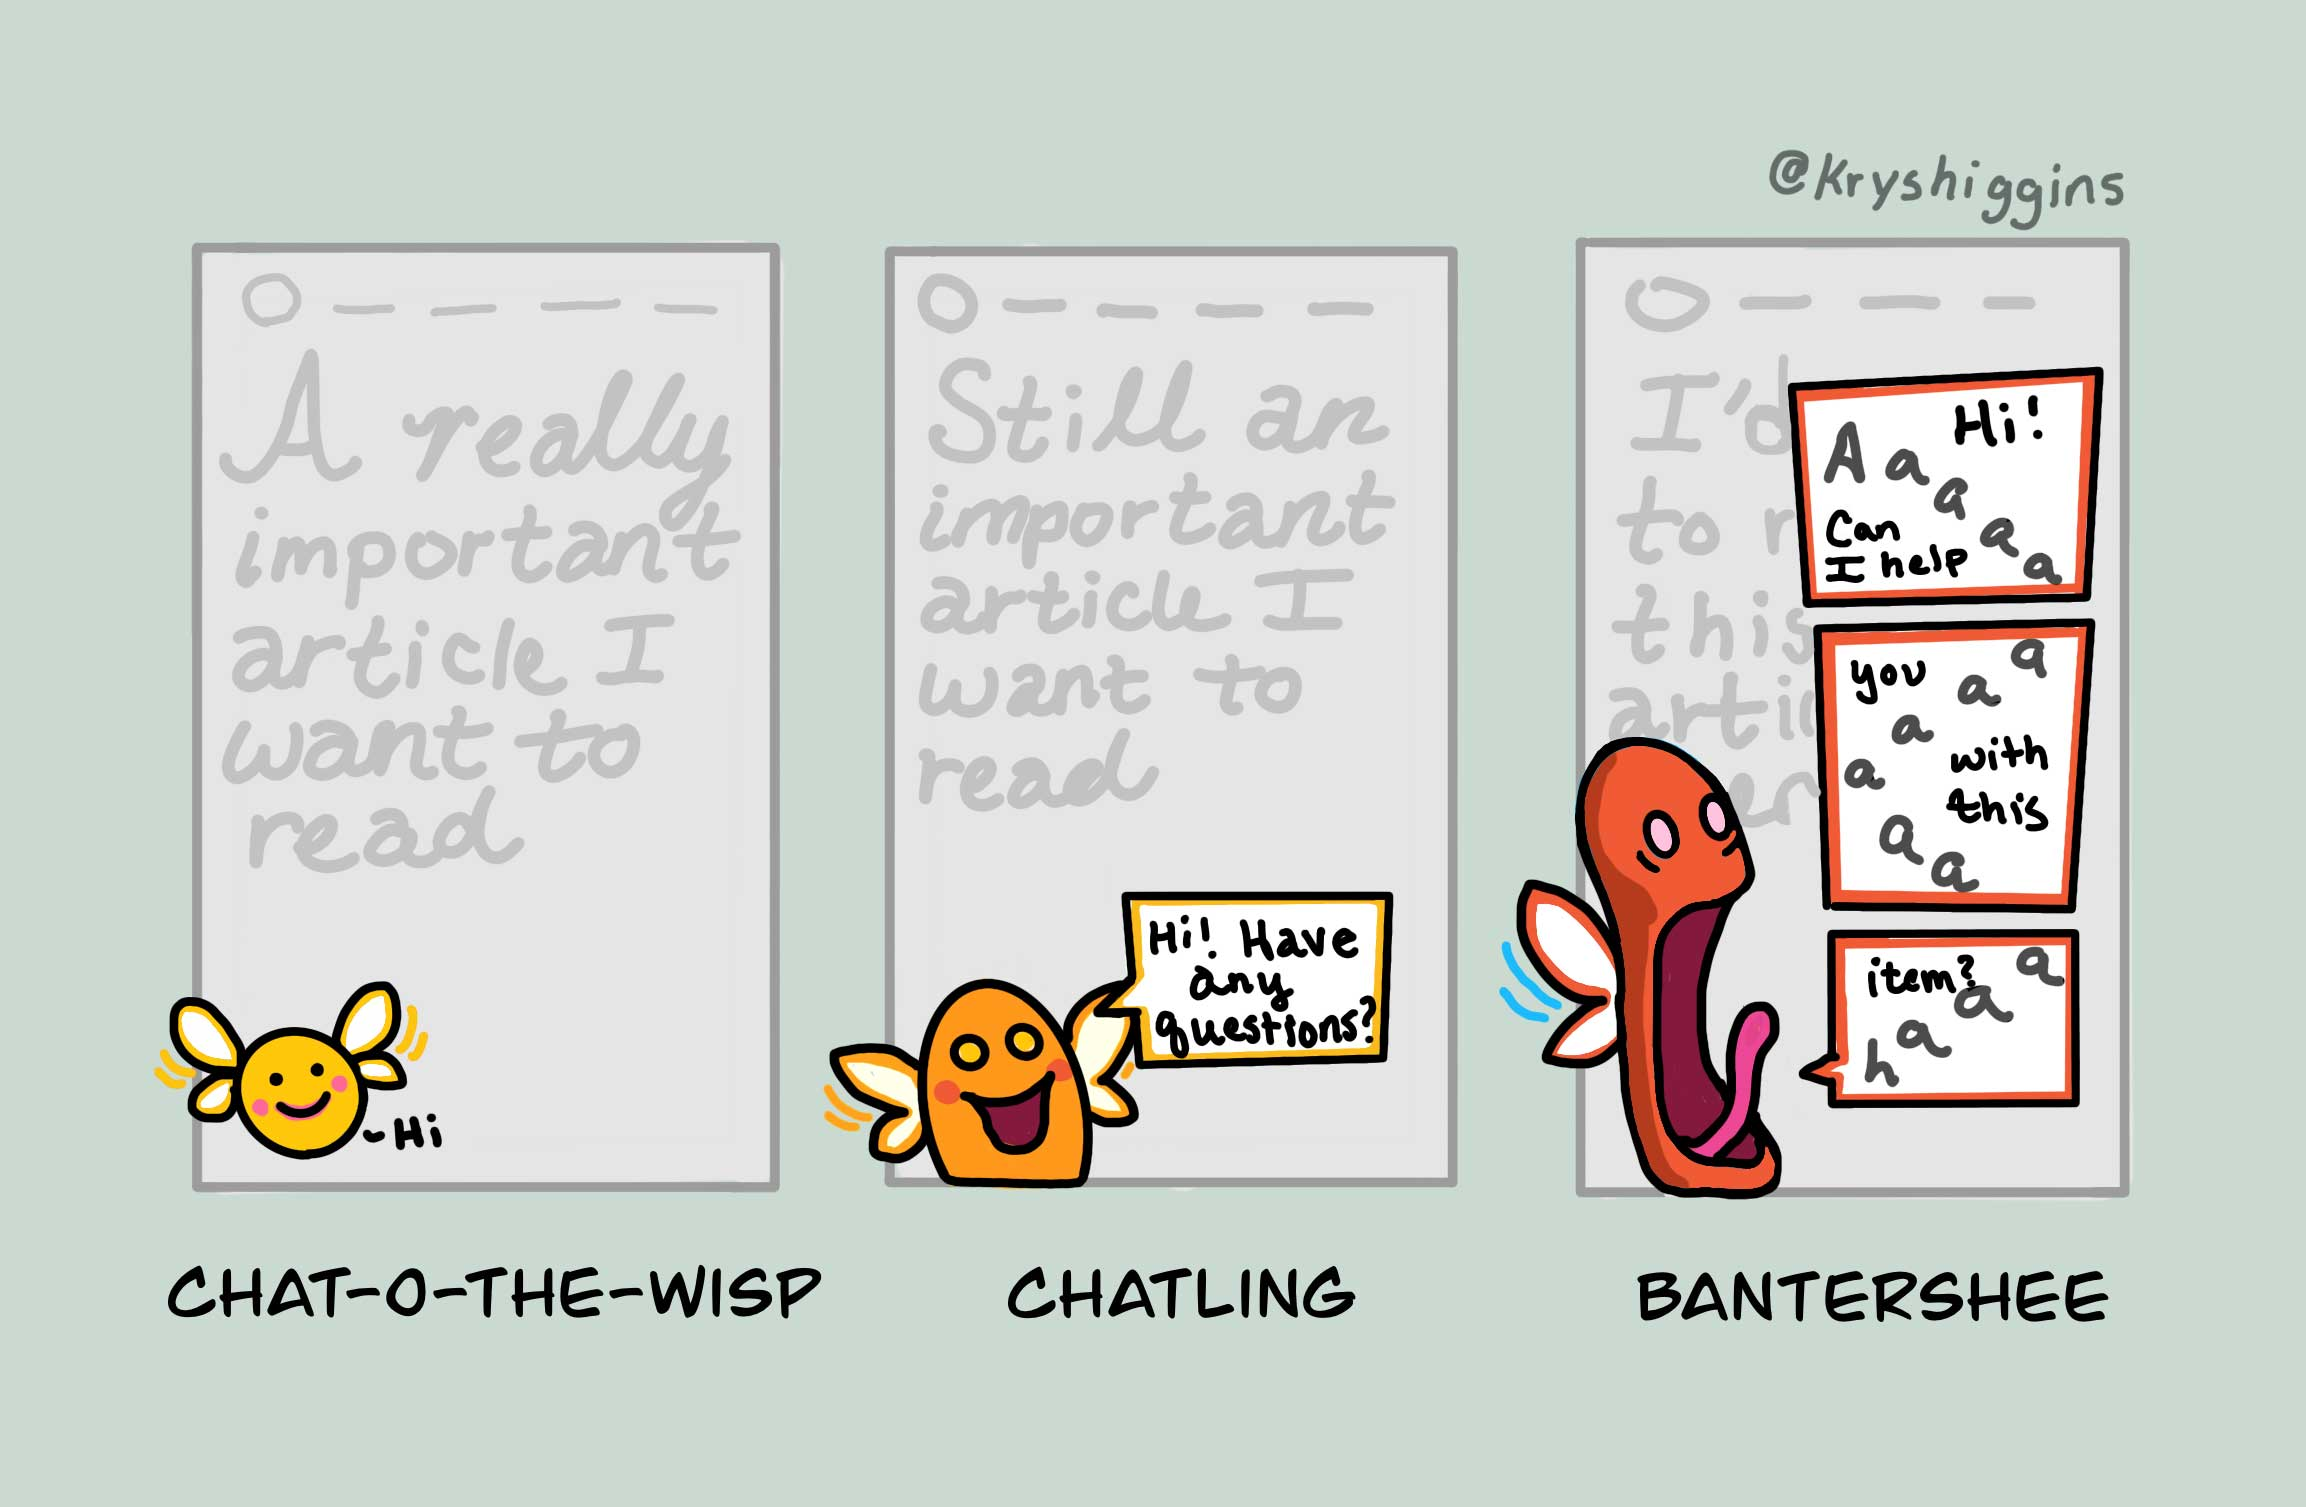 "Illustration of 3 mobile screens: the first (""Chat-o-the-wisp"") shows a tiny, friendly looking fairy-creature quietly hovering in the lower left; the second (""Chatling"") shows a larger fairy create now asking ""Hi, have any questions?""; and the third (""Bantershee"") shows a larger fairy creature spewing multiple speech bubbles that read, roughly, ""aaaaaaaaaahhhhh"""